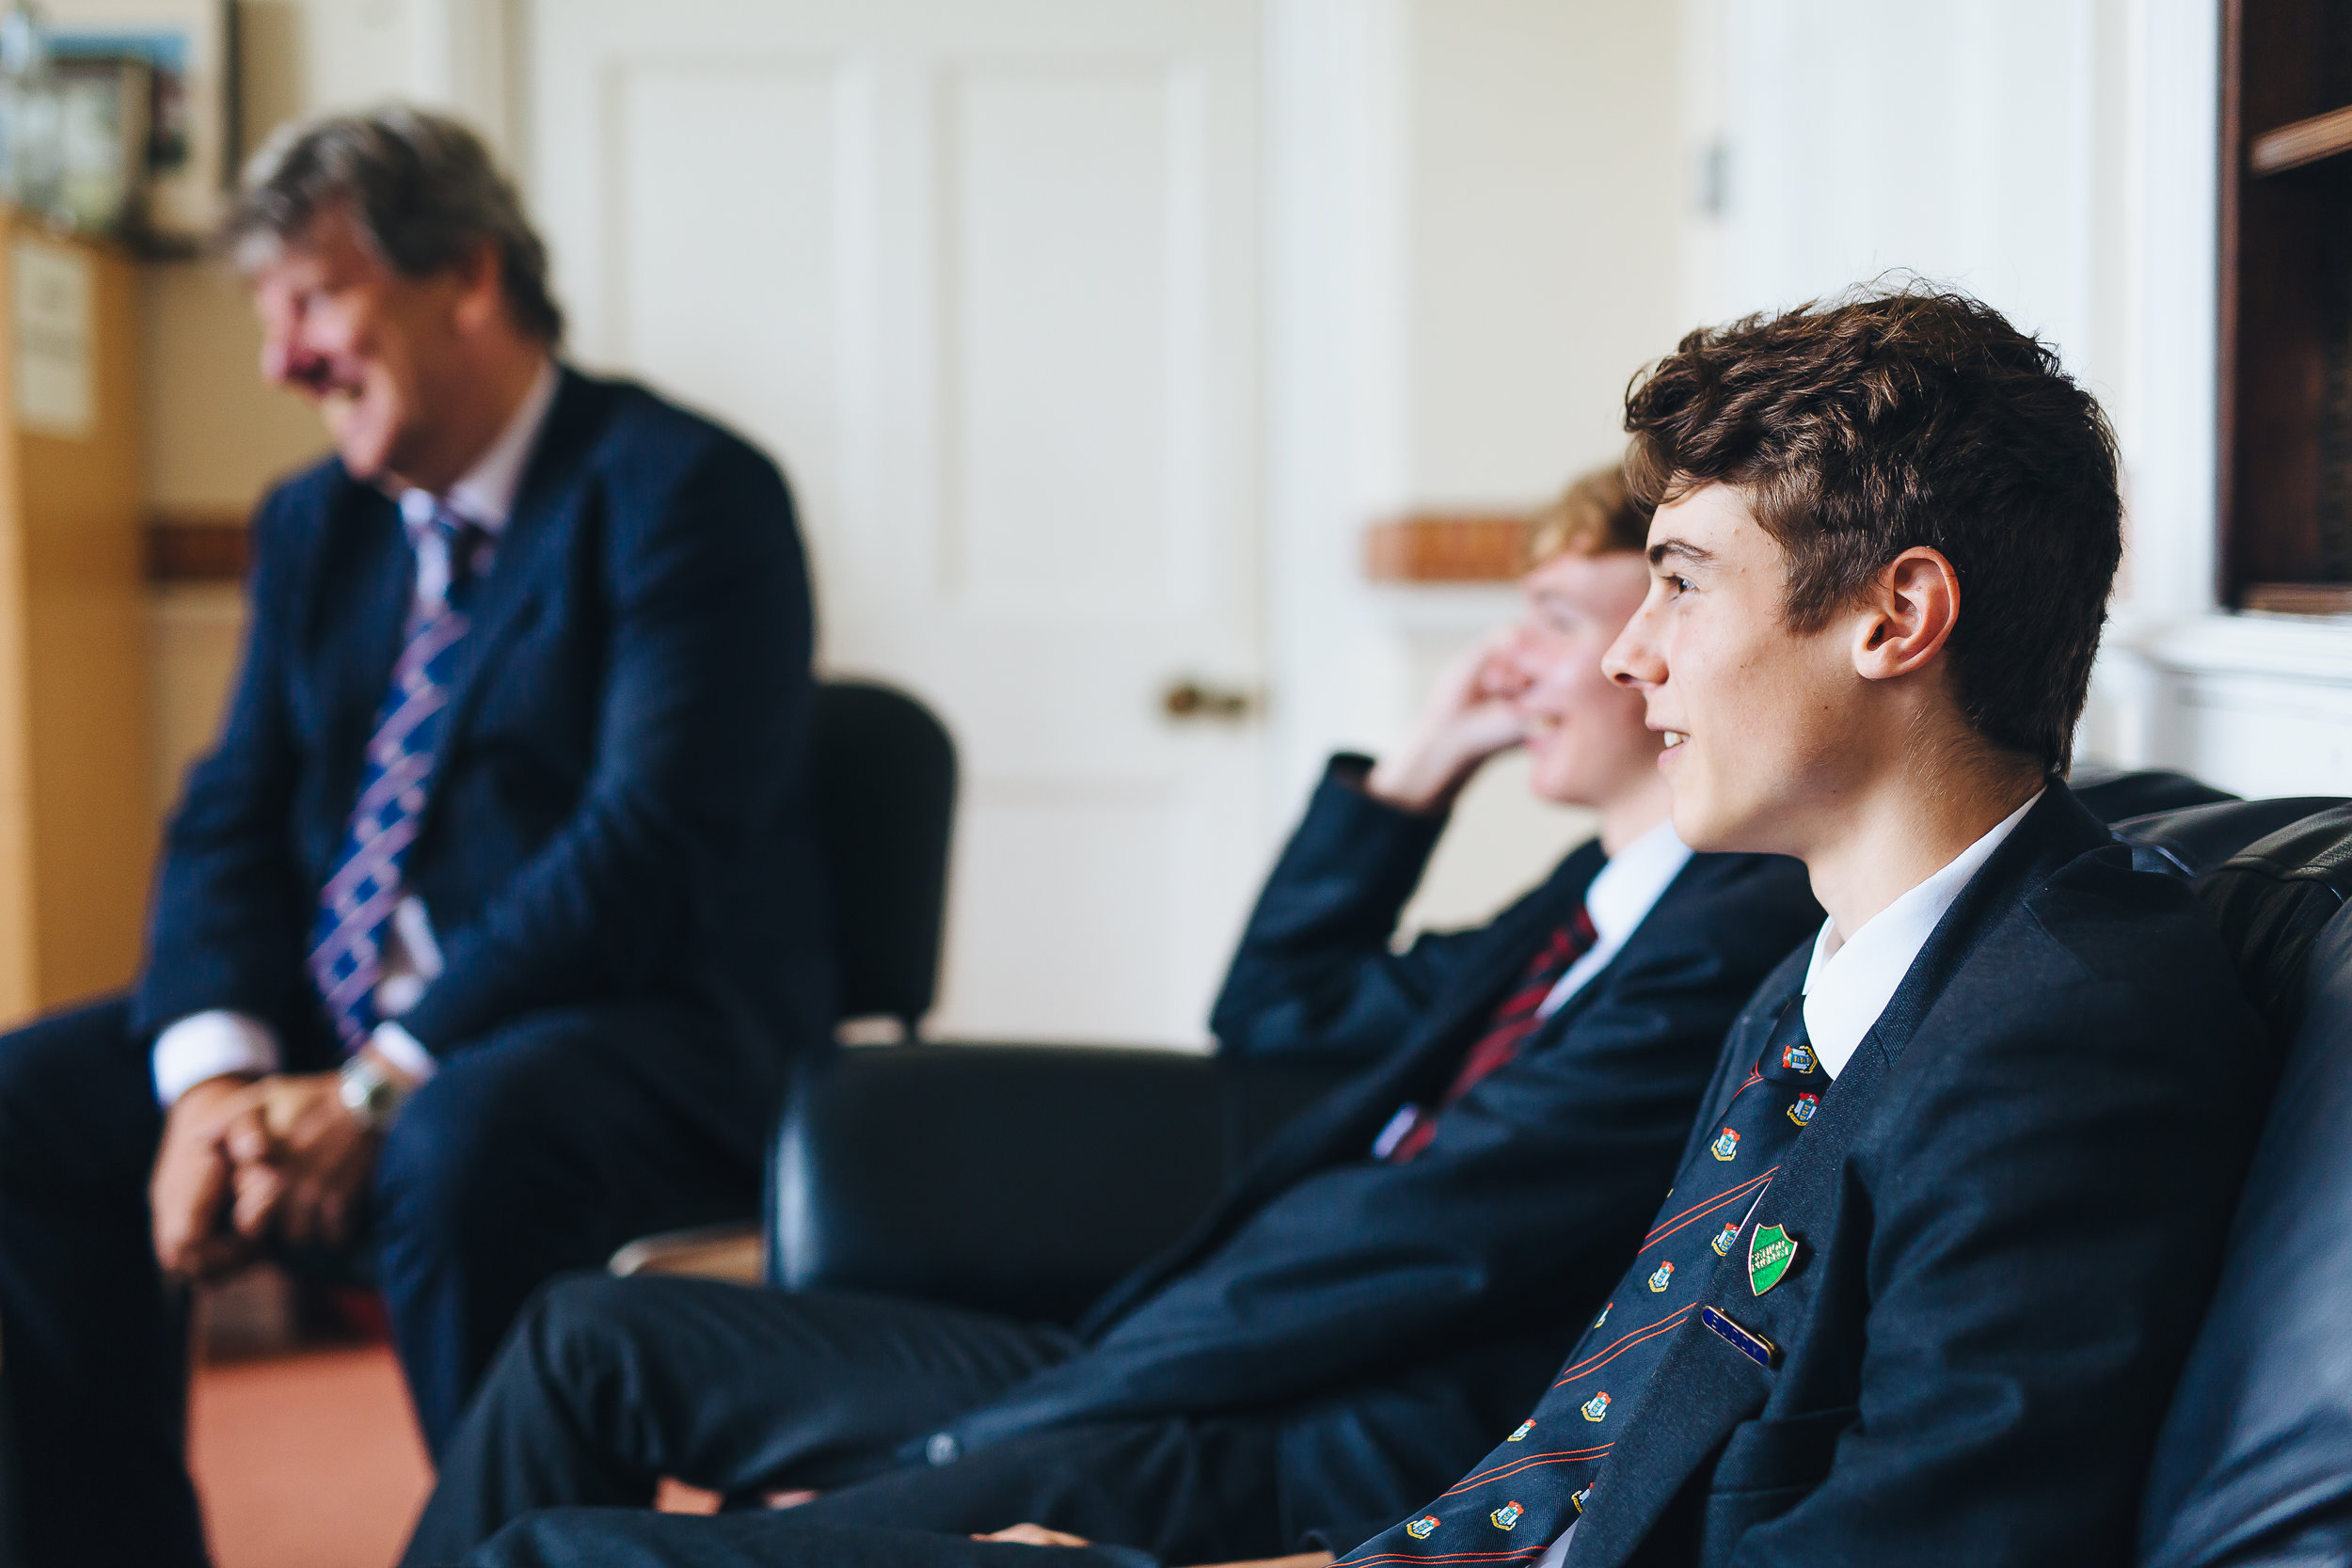 Hymers+Prospectus+Photos+-+Thursday+29th+June-72.jpg